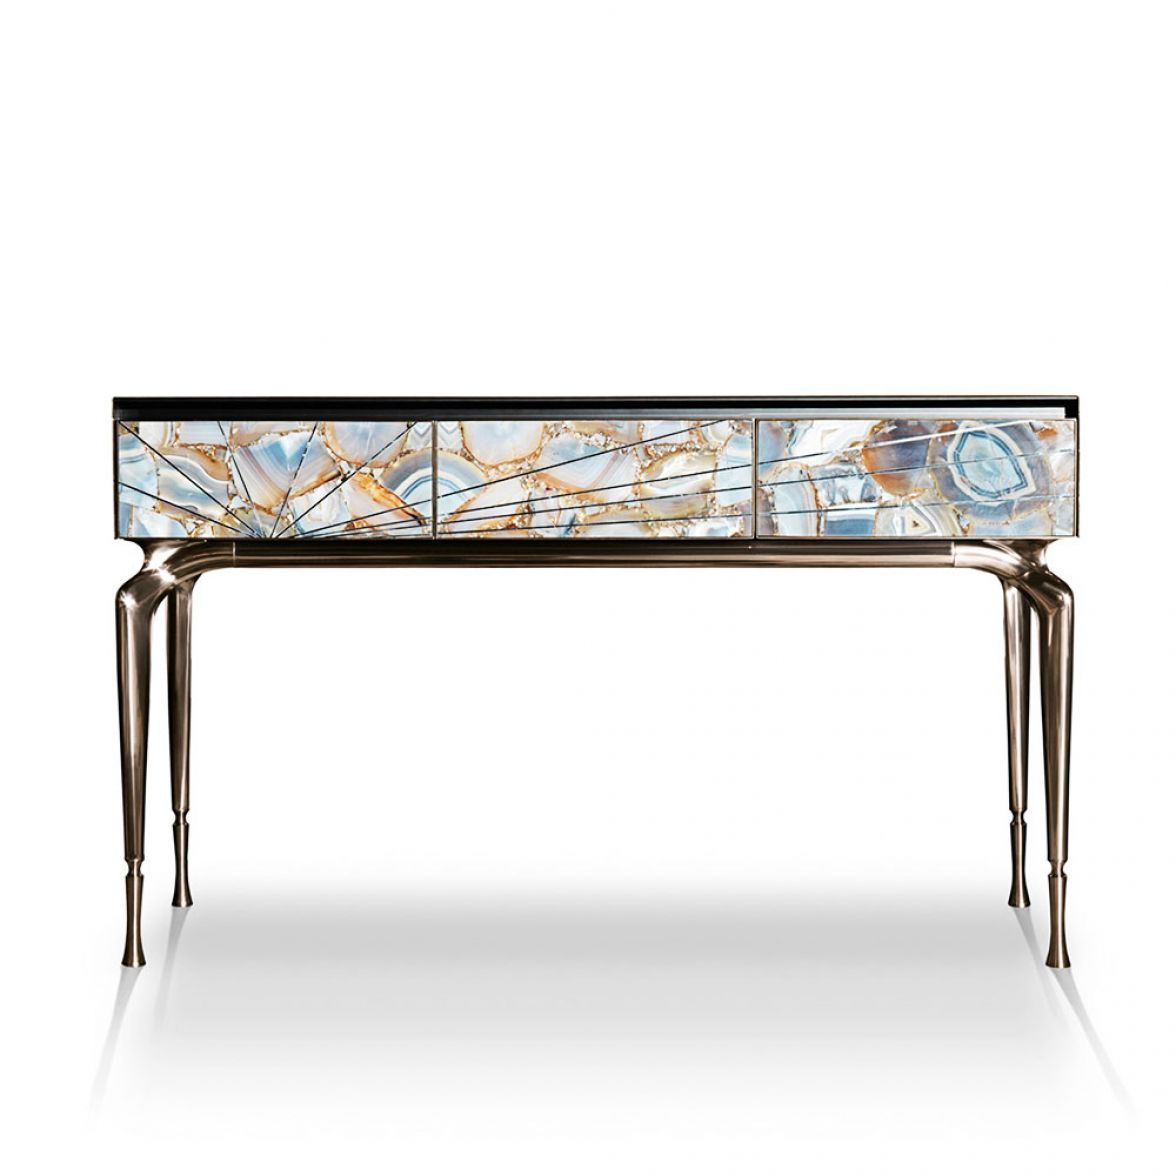 Aurora console table фото цена